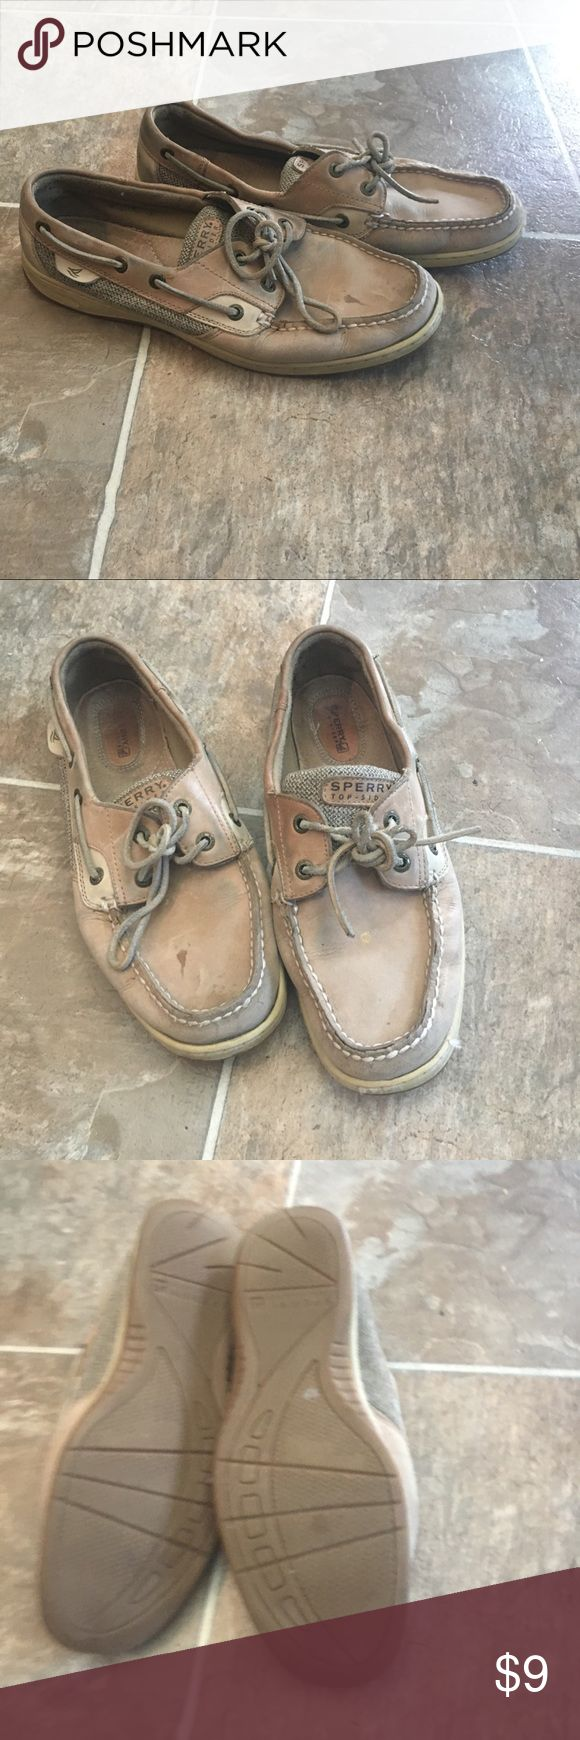 Women Sperry Top Slider Worn Sperry women shoes. Have wear and tear but feel fabulous. Sperry Shoes Flats & Loafers